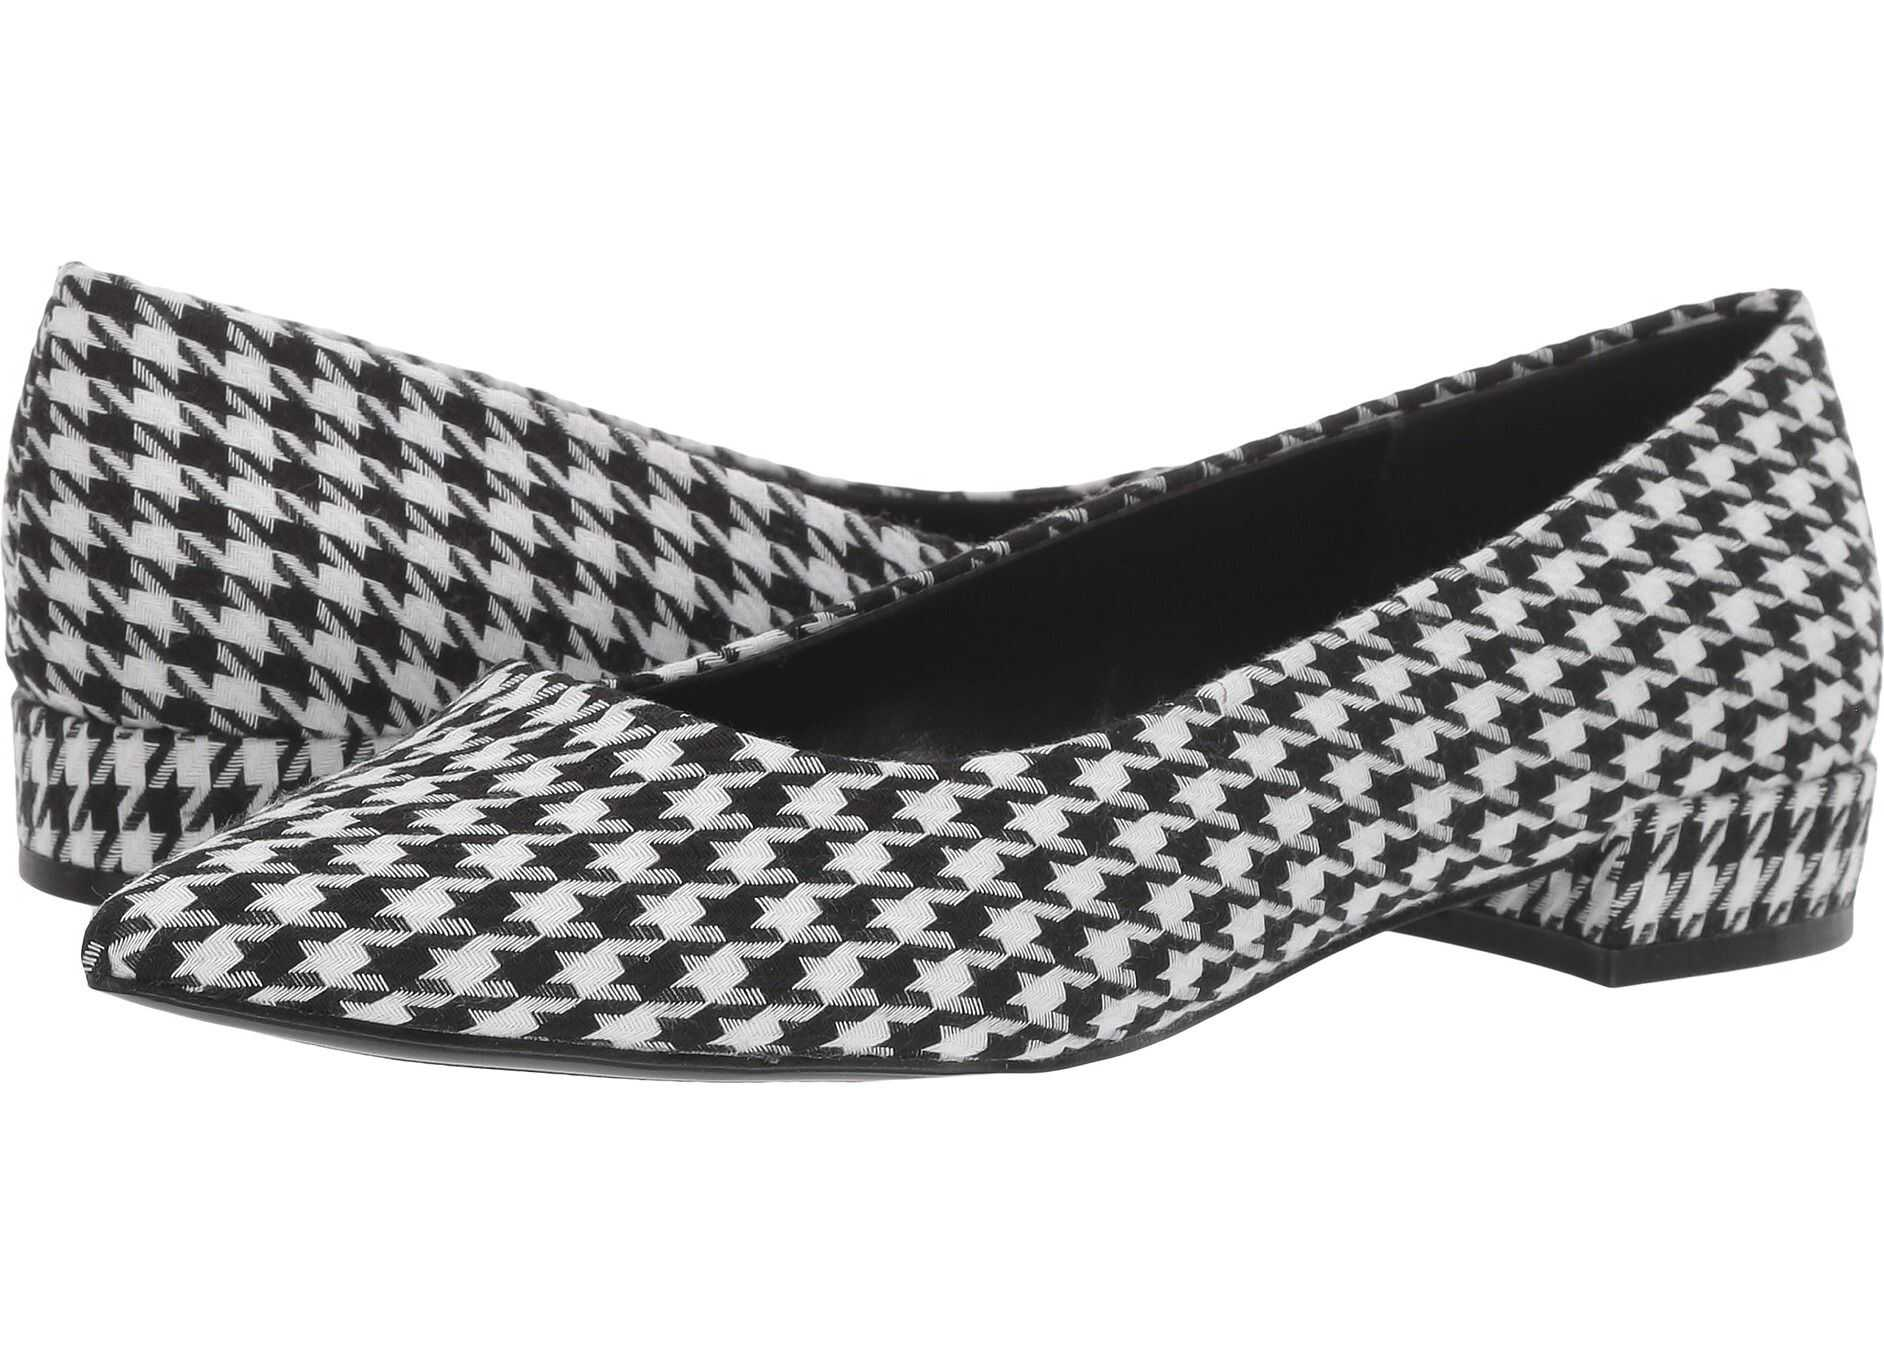 Nine West Fayth Flat* Black/White